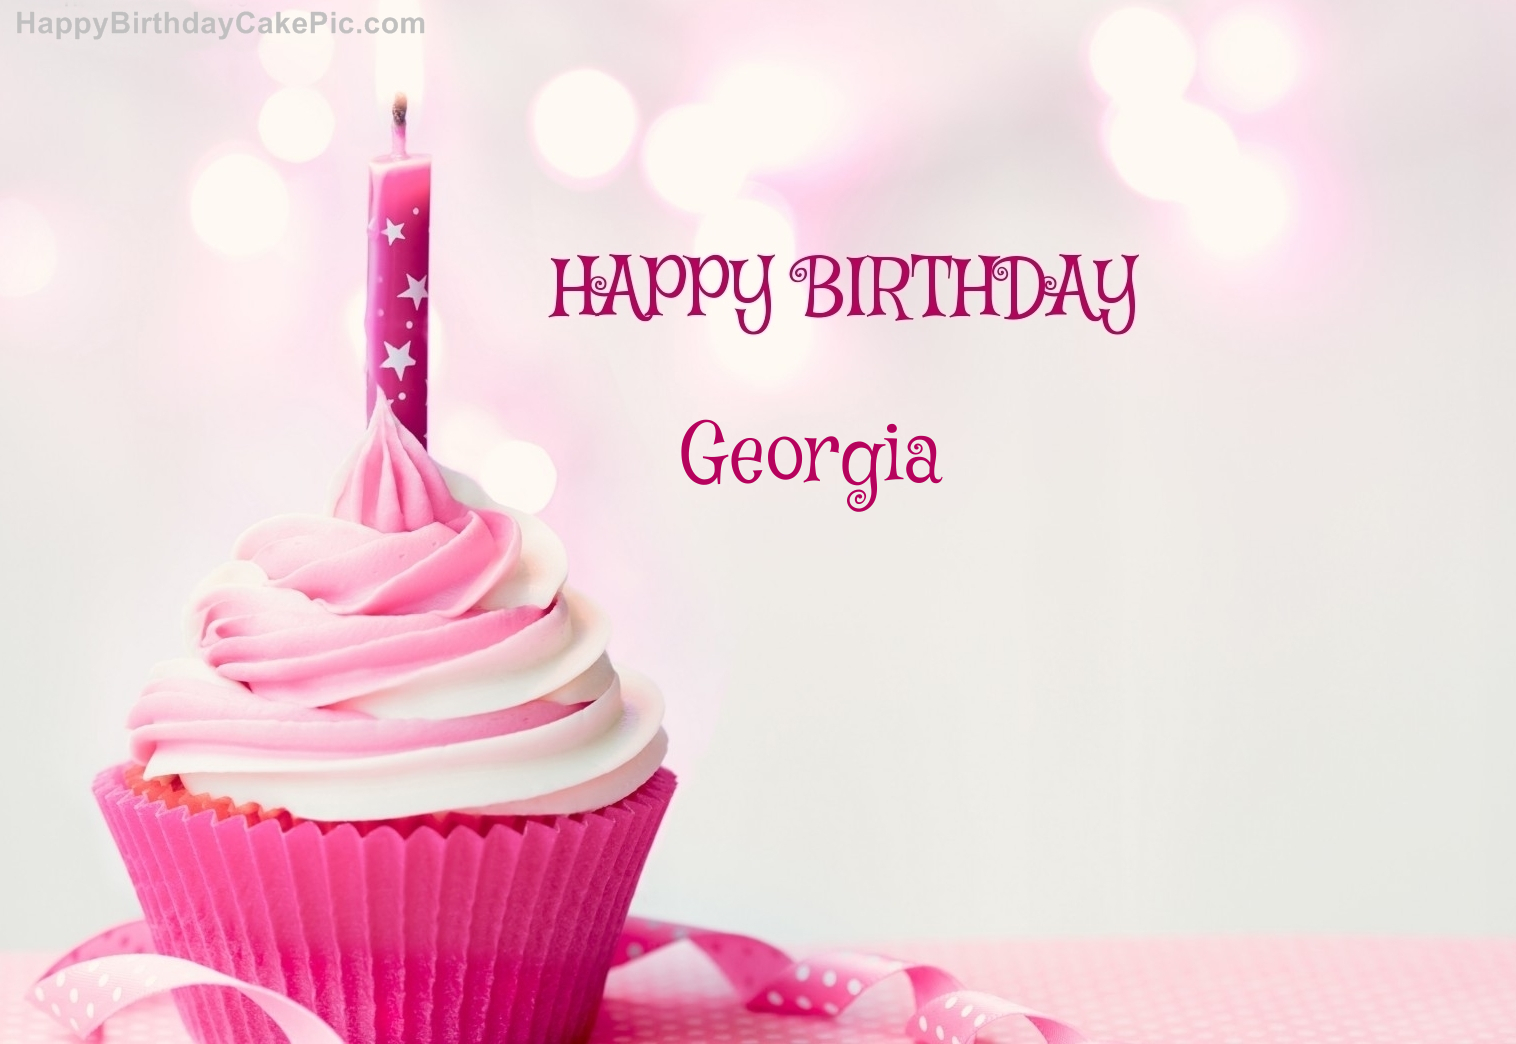 Happy Birthday Cupcake Candle Pink Cake For Georgia